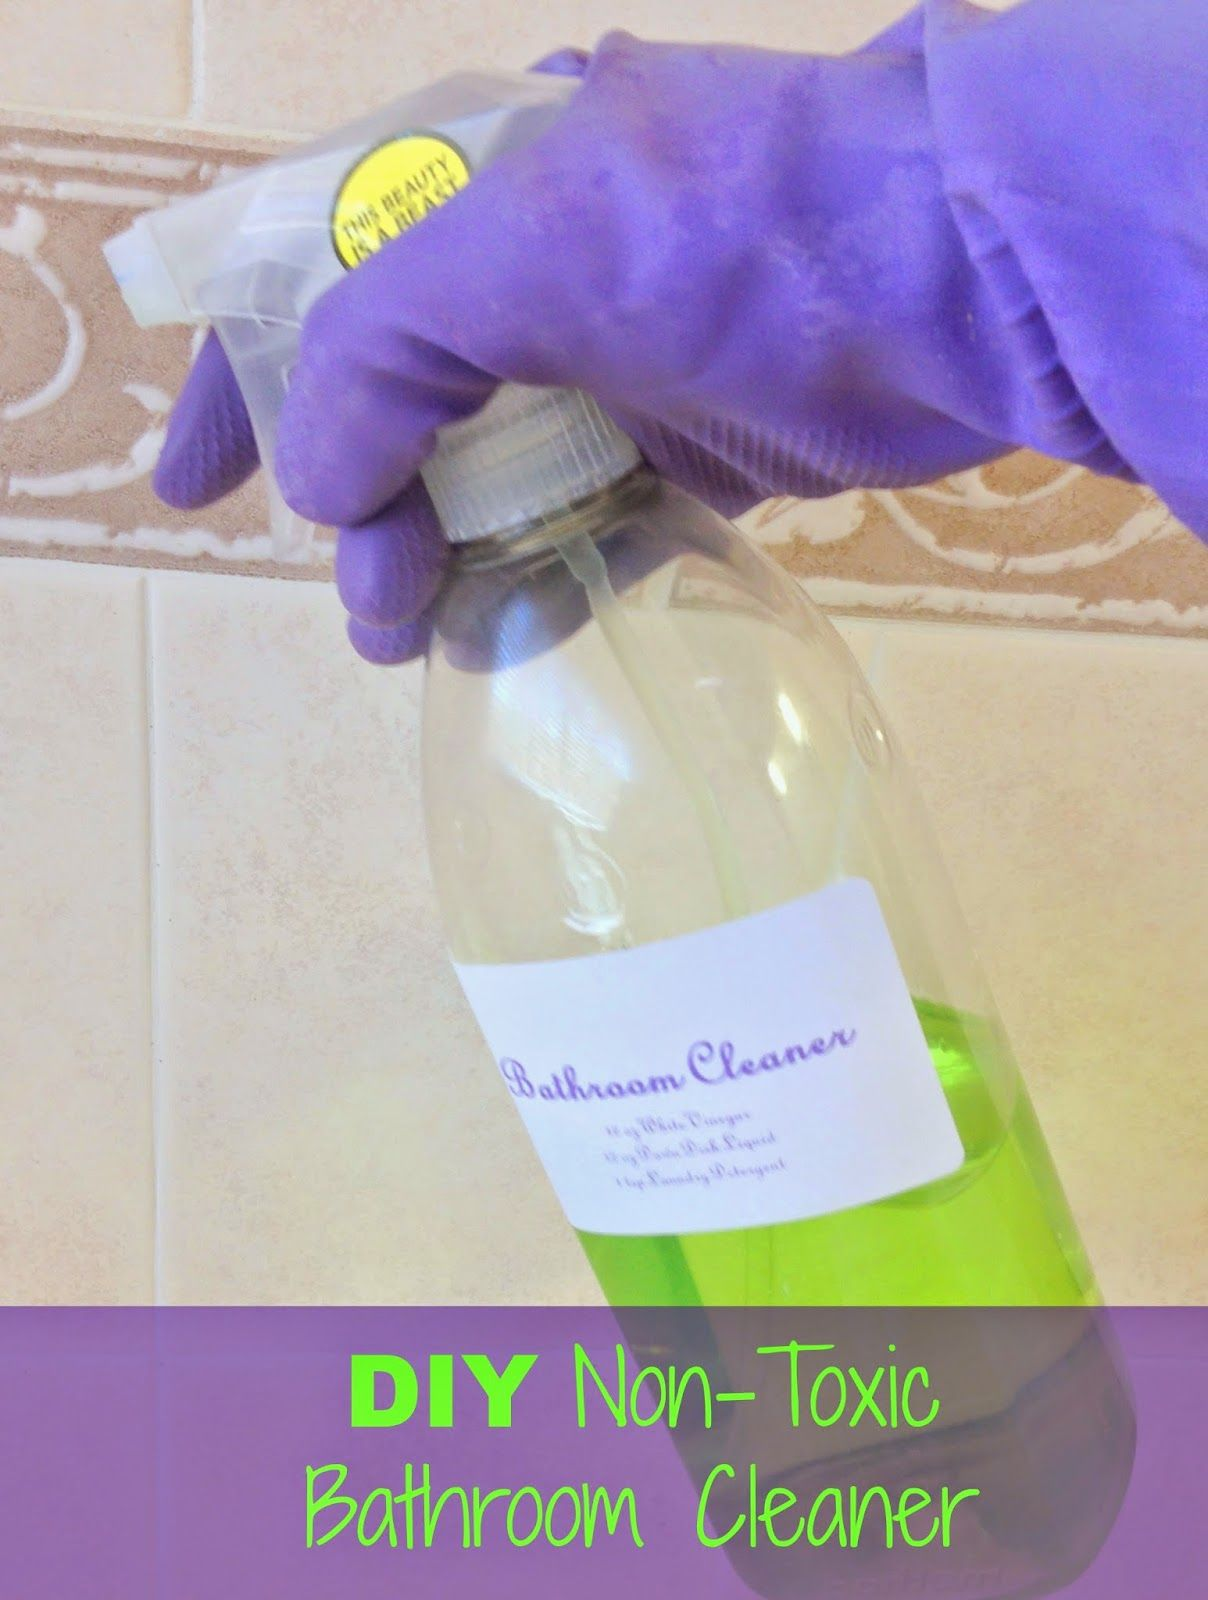 DIY NonToxic Bathroom Cleaner Bathroom Cleaning Household And - Non toxic bathroom cleaner